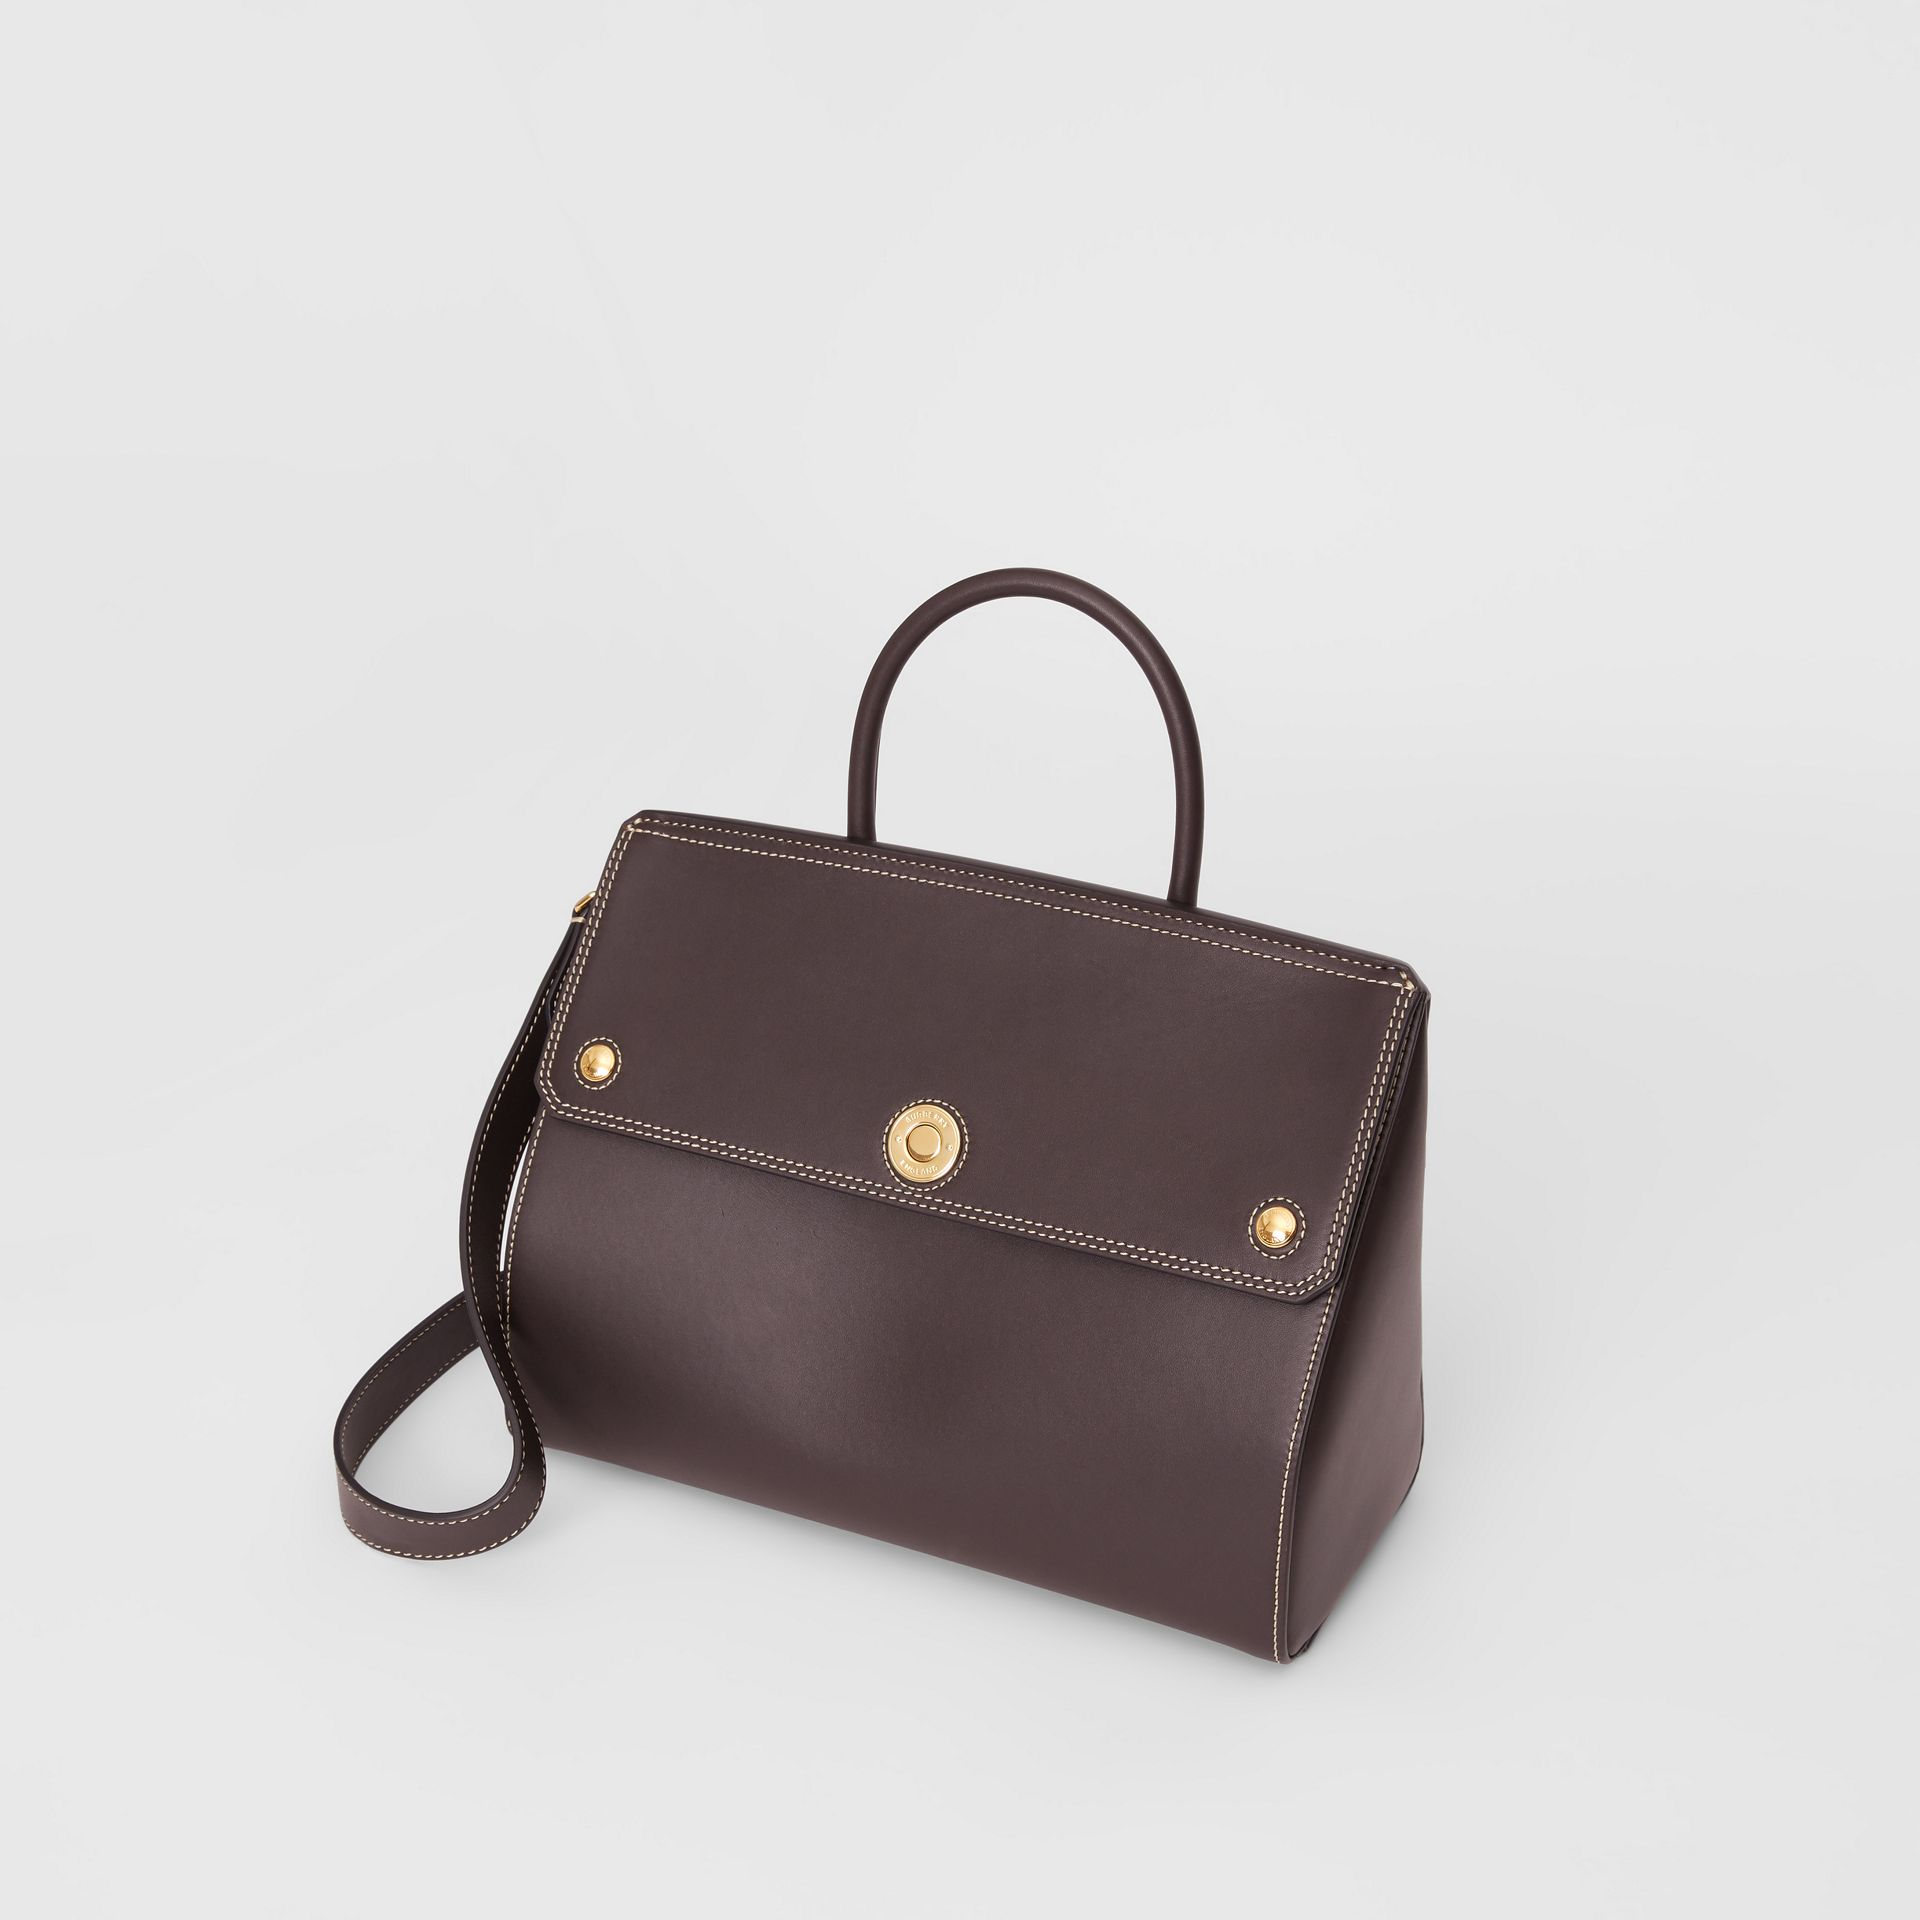 Small Leather Elizabeth Bag in Coffee - Women | Burberry United States - gallery image 3